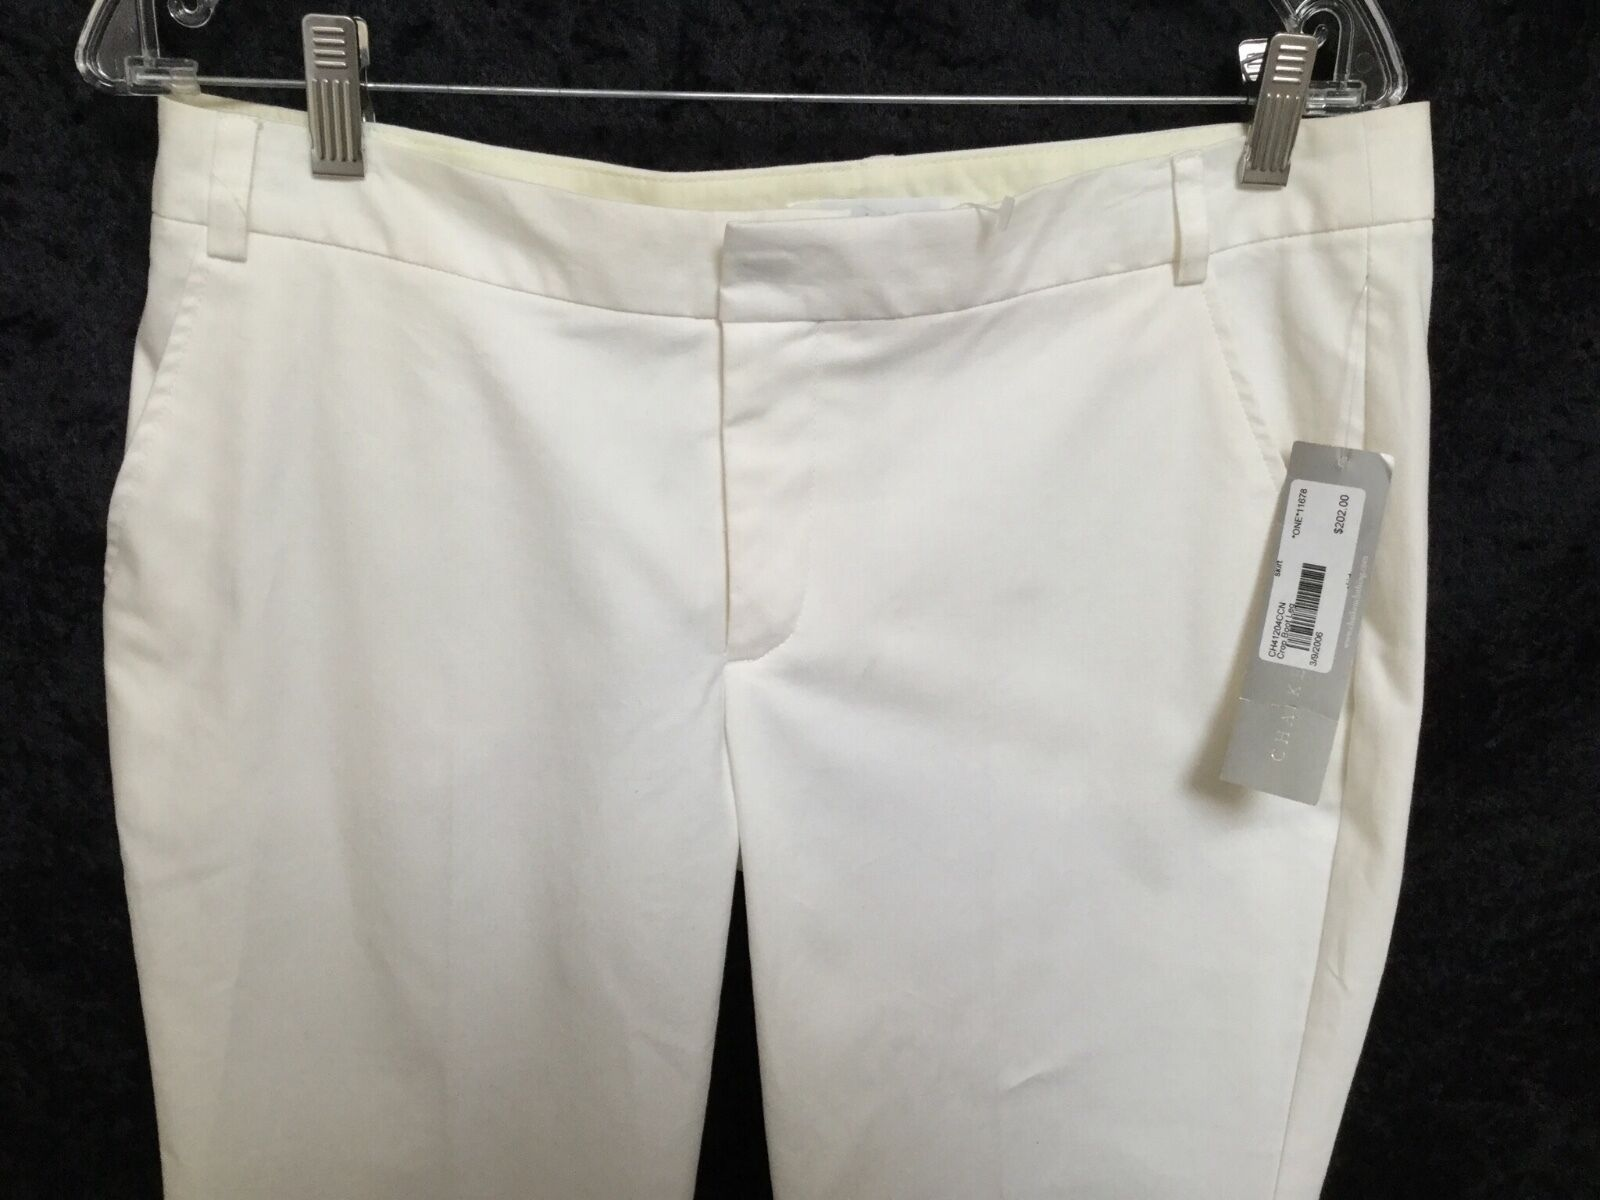 NWT CHAIKEN Cropped Stretch Boot Pant- White- Size 10- Sells New for 202